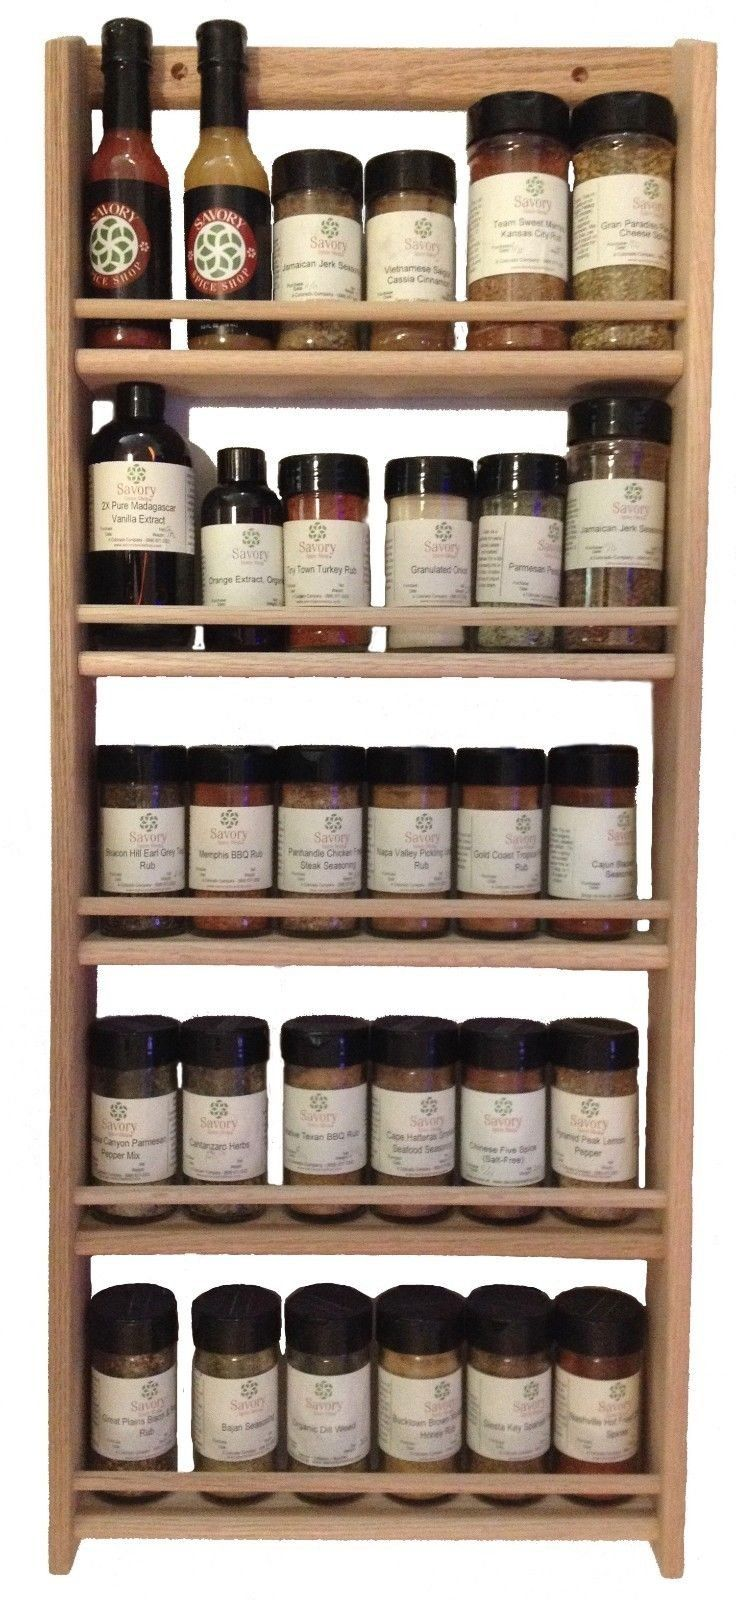 "Wooden Spice Rack Wall Mount Extraordinary Solid Oak Wood Spice Rack  3275""h X 1375 ""w  Wall Mount Wooden Design Ideas"